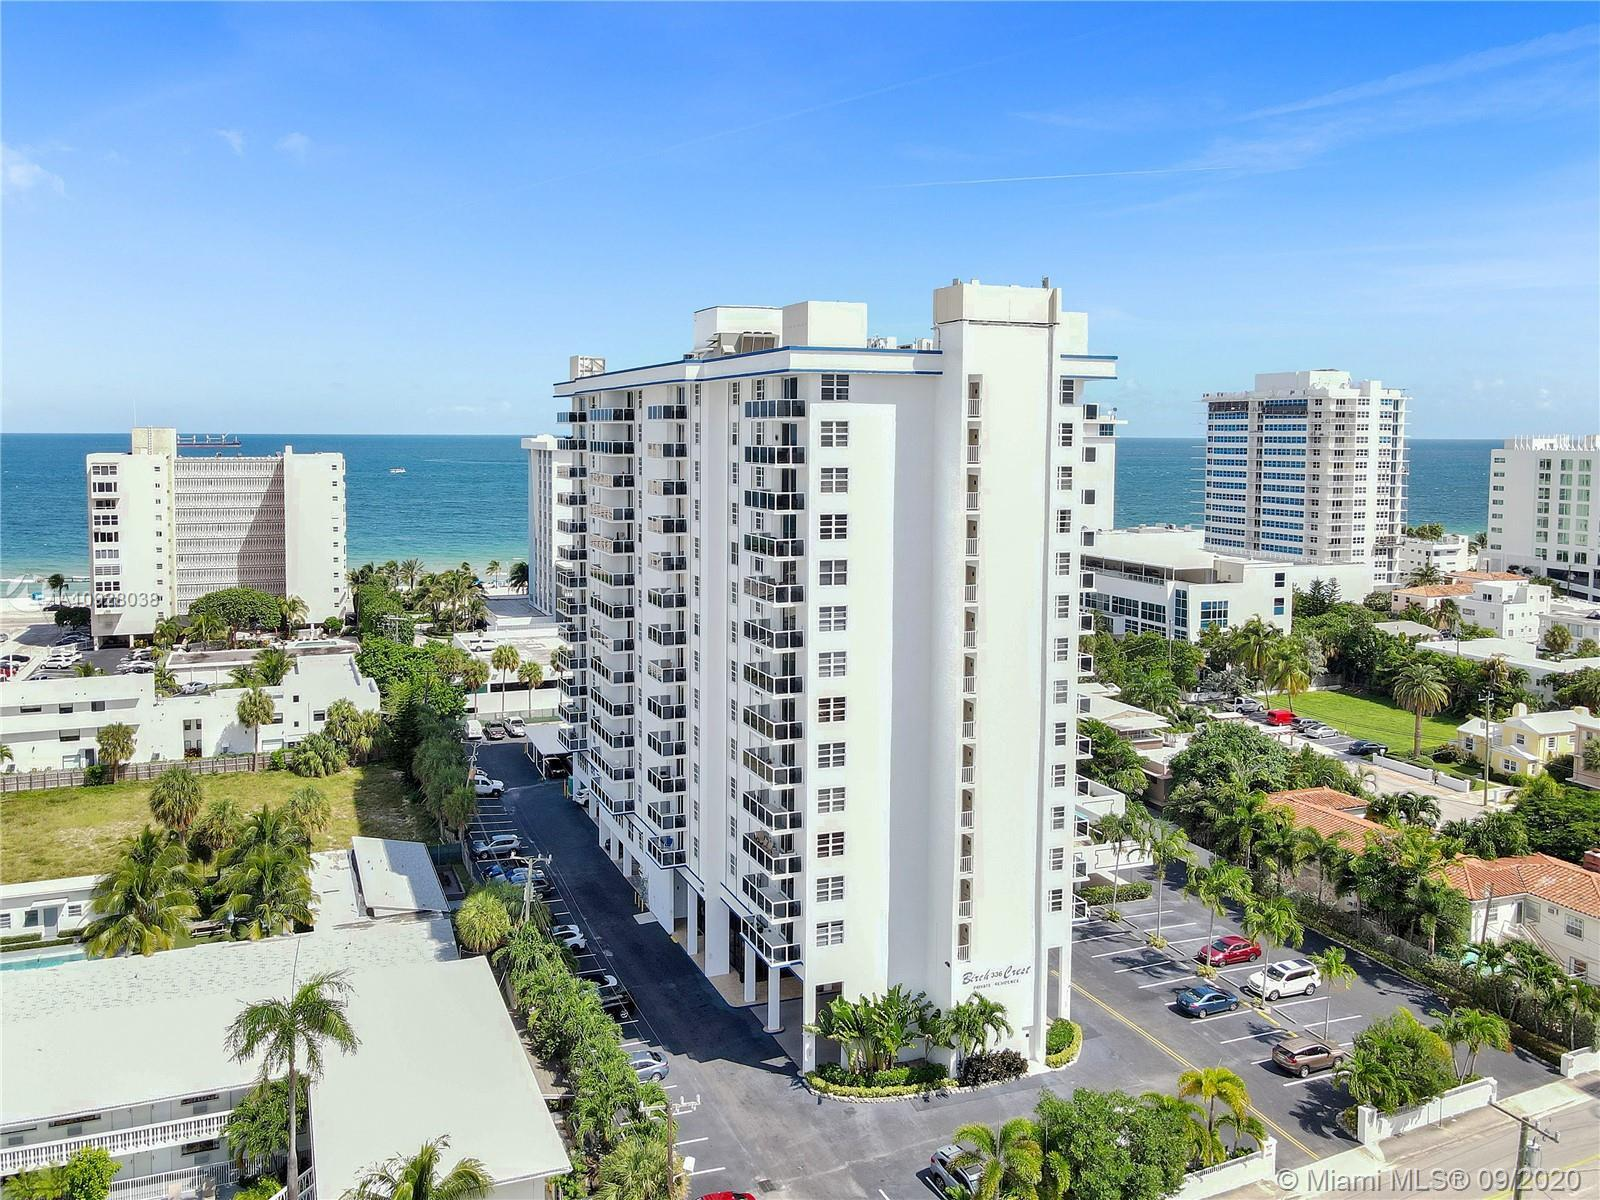 Furnished 1 bed/1.5 baths condo ready to welcome you to luxurious beach style living in a prime beac